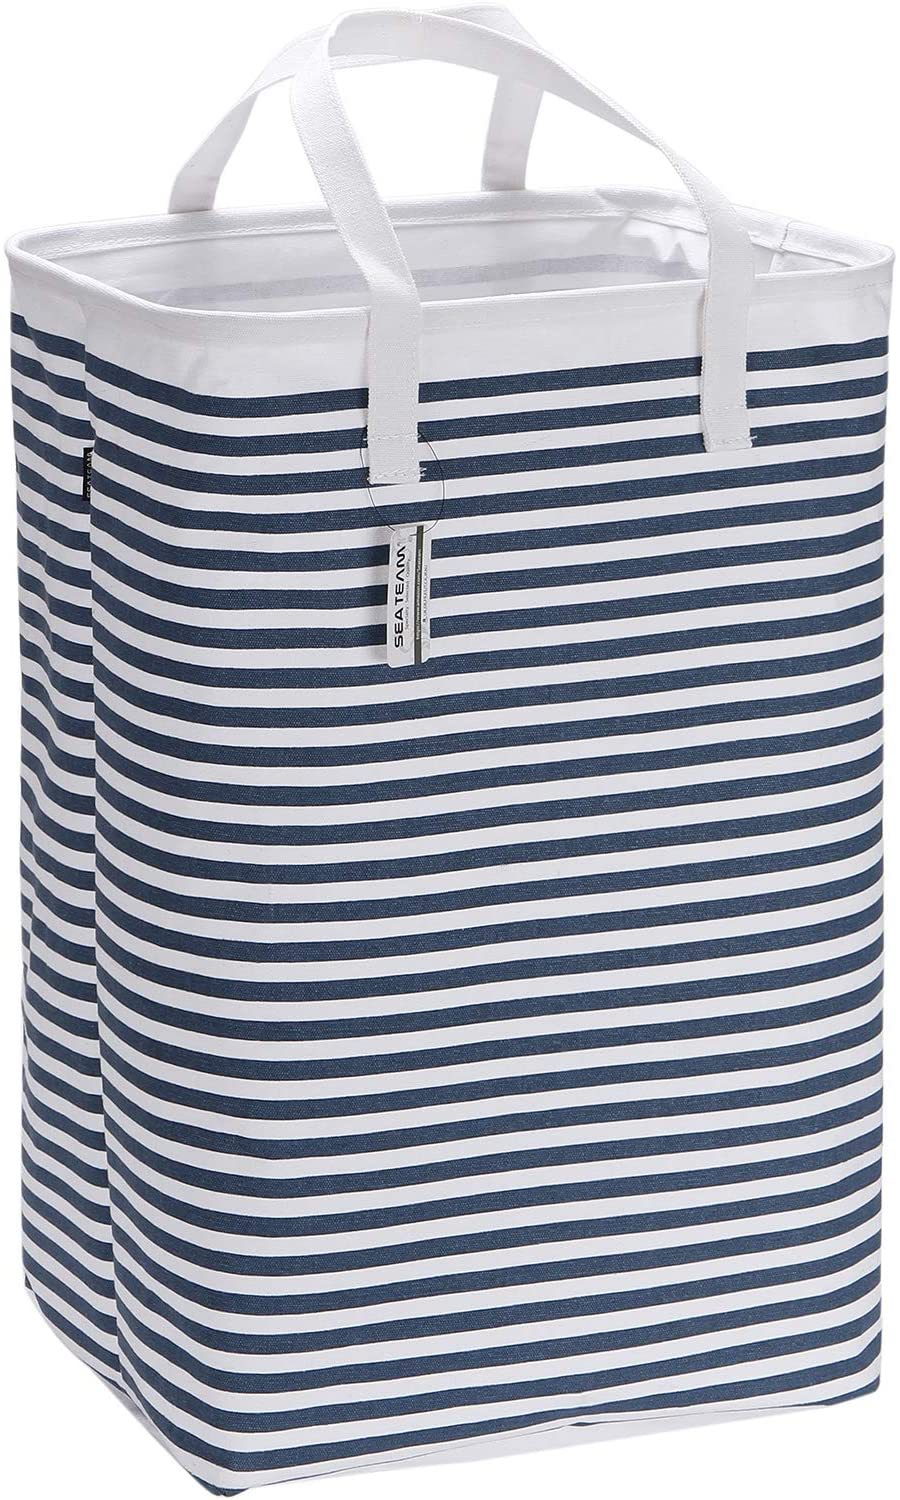 "Sea Team 23.6"" Large Size Canvas Fabric Laundry Hamper Collapsible Rectangular Storage Basket with Waterproof Coating Inner and Handles, Navy Blue & White Stripe"